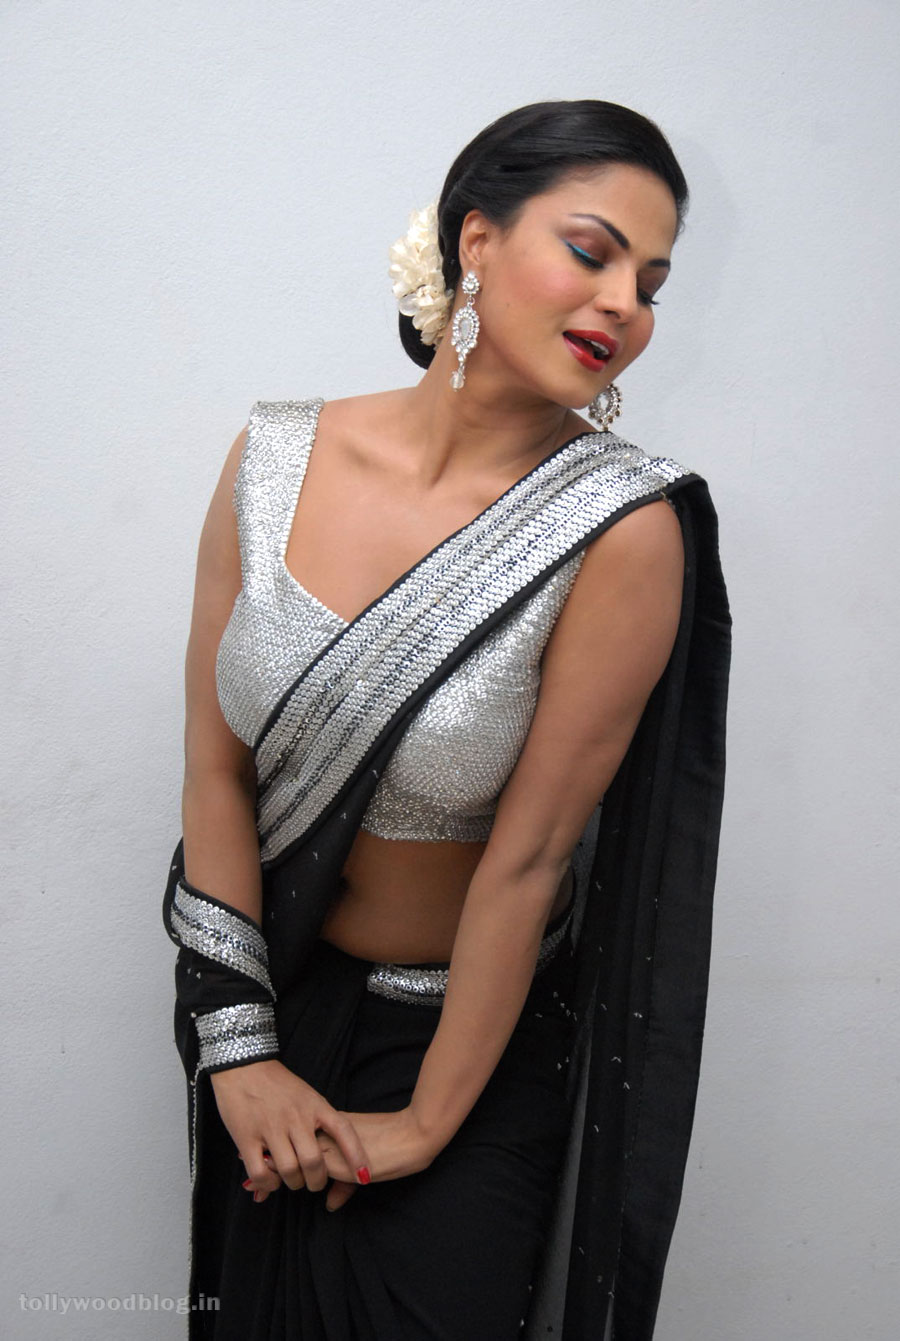 Veena malik new hot